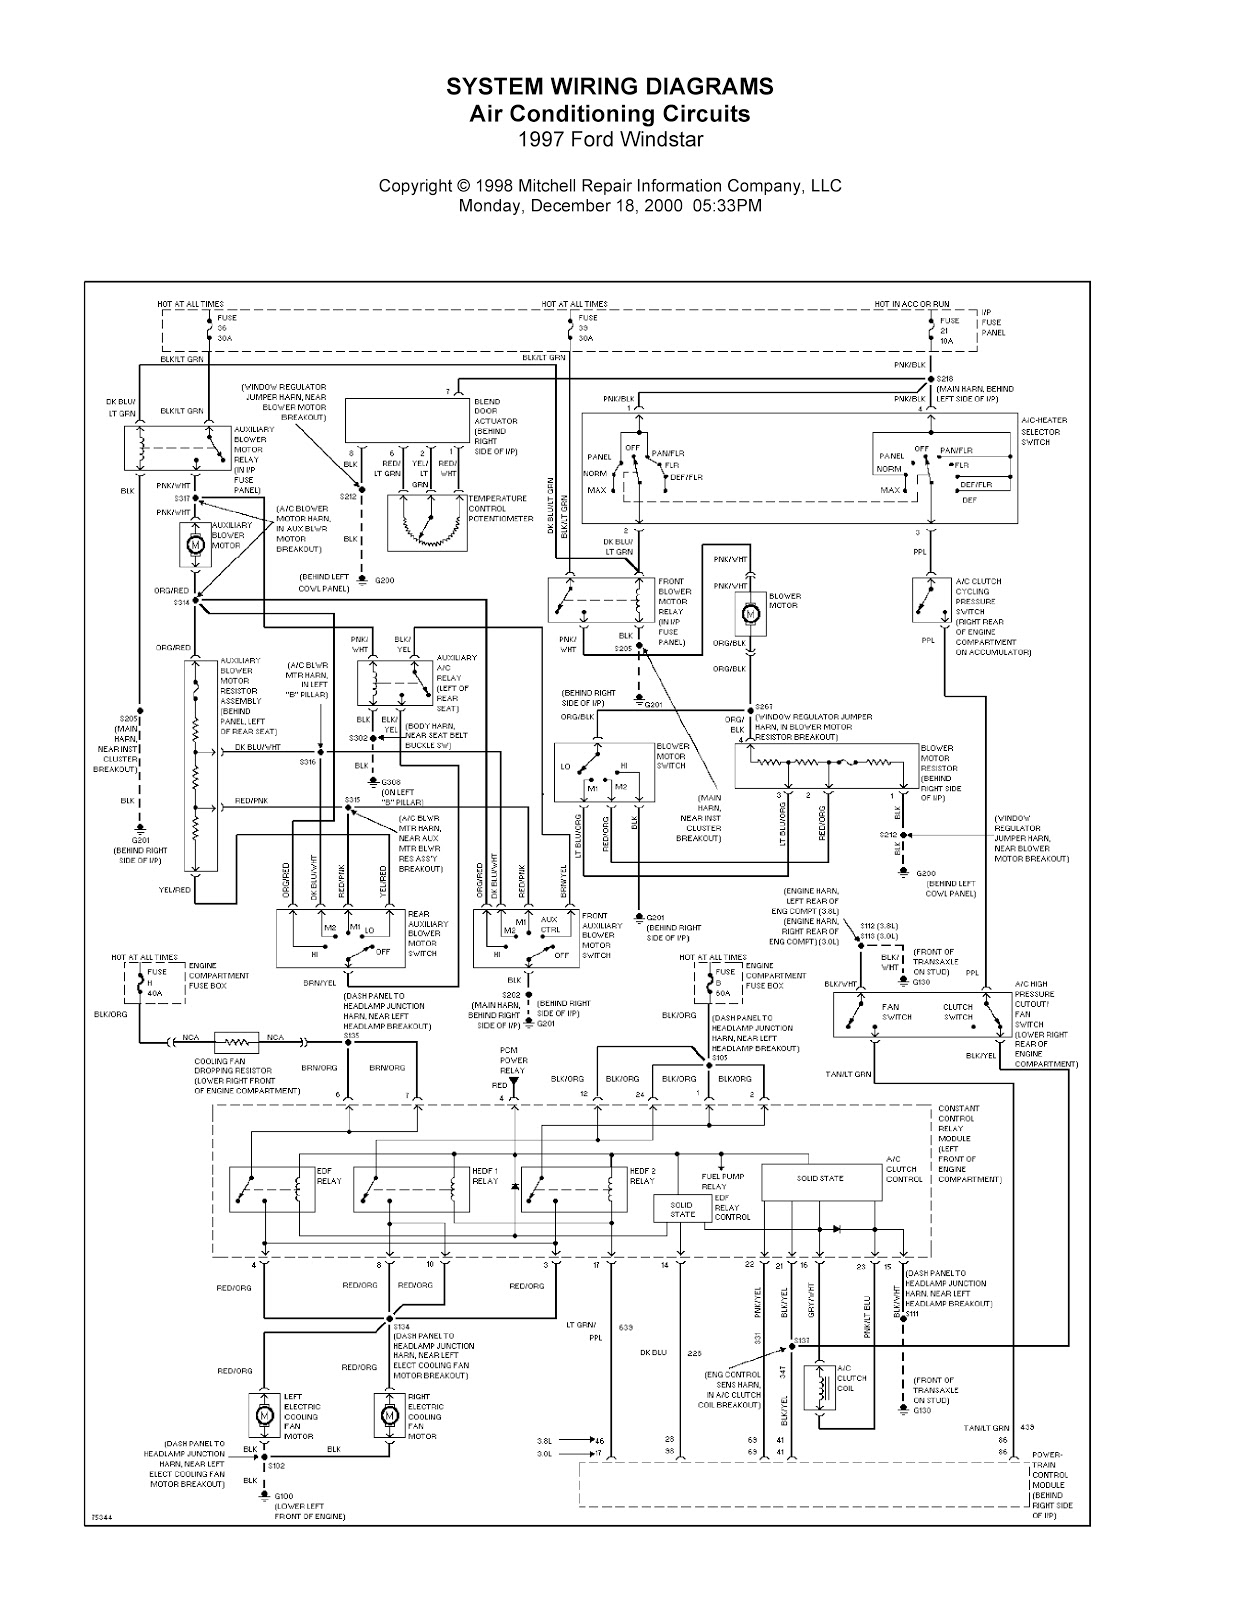 0001 1997 ford windstar complete system wiring diagrams wiring 2002 ford windstar radio wiring diagram at gsmportal.co